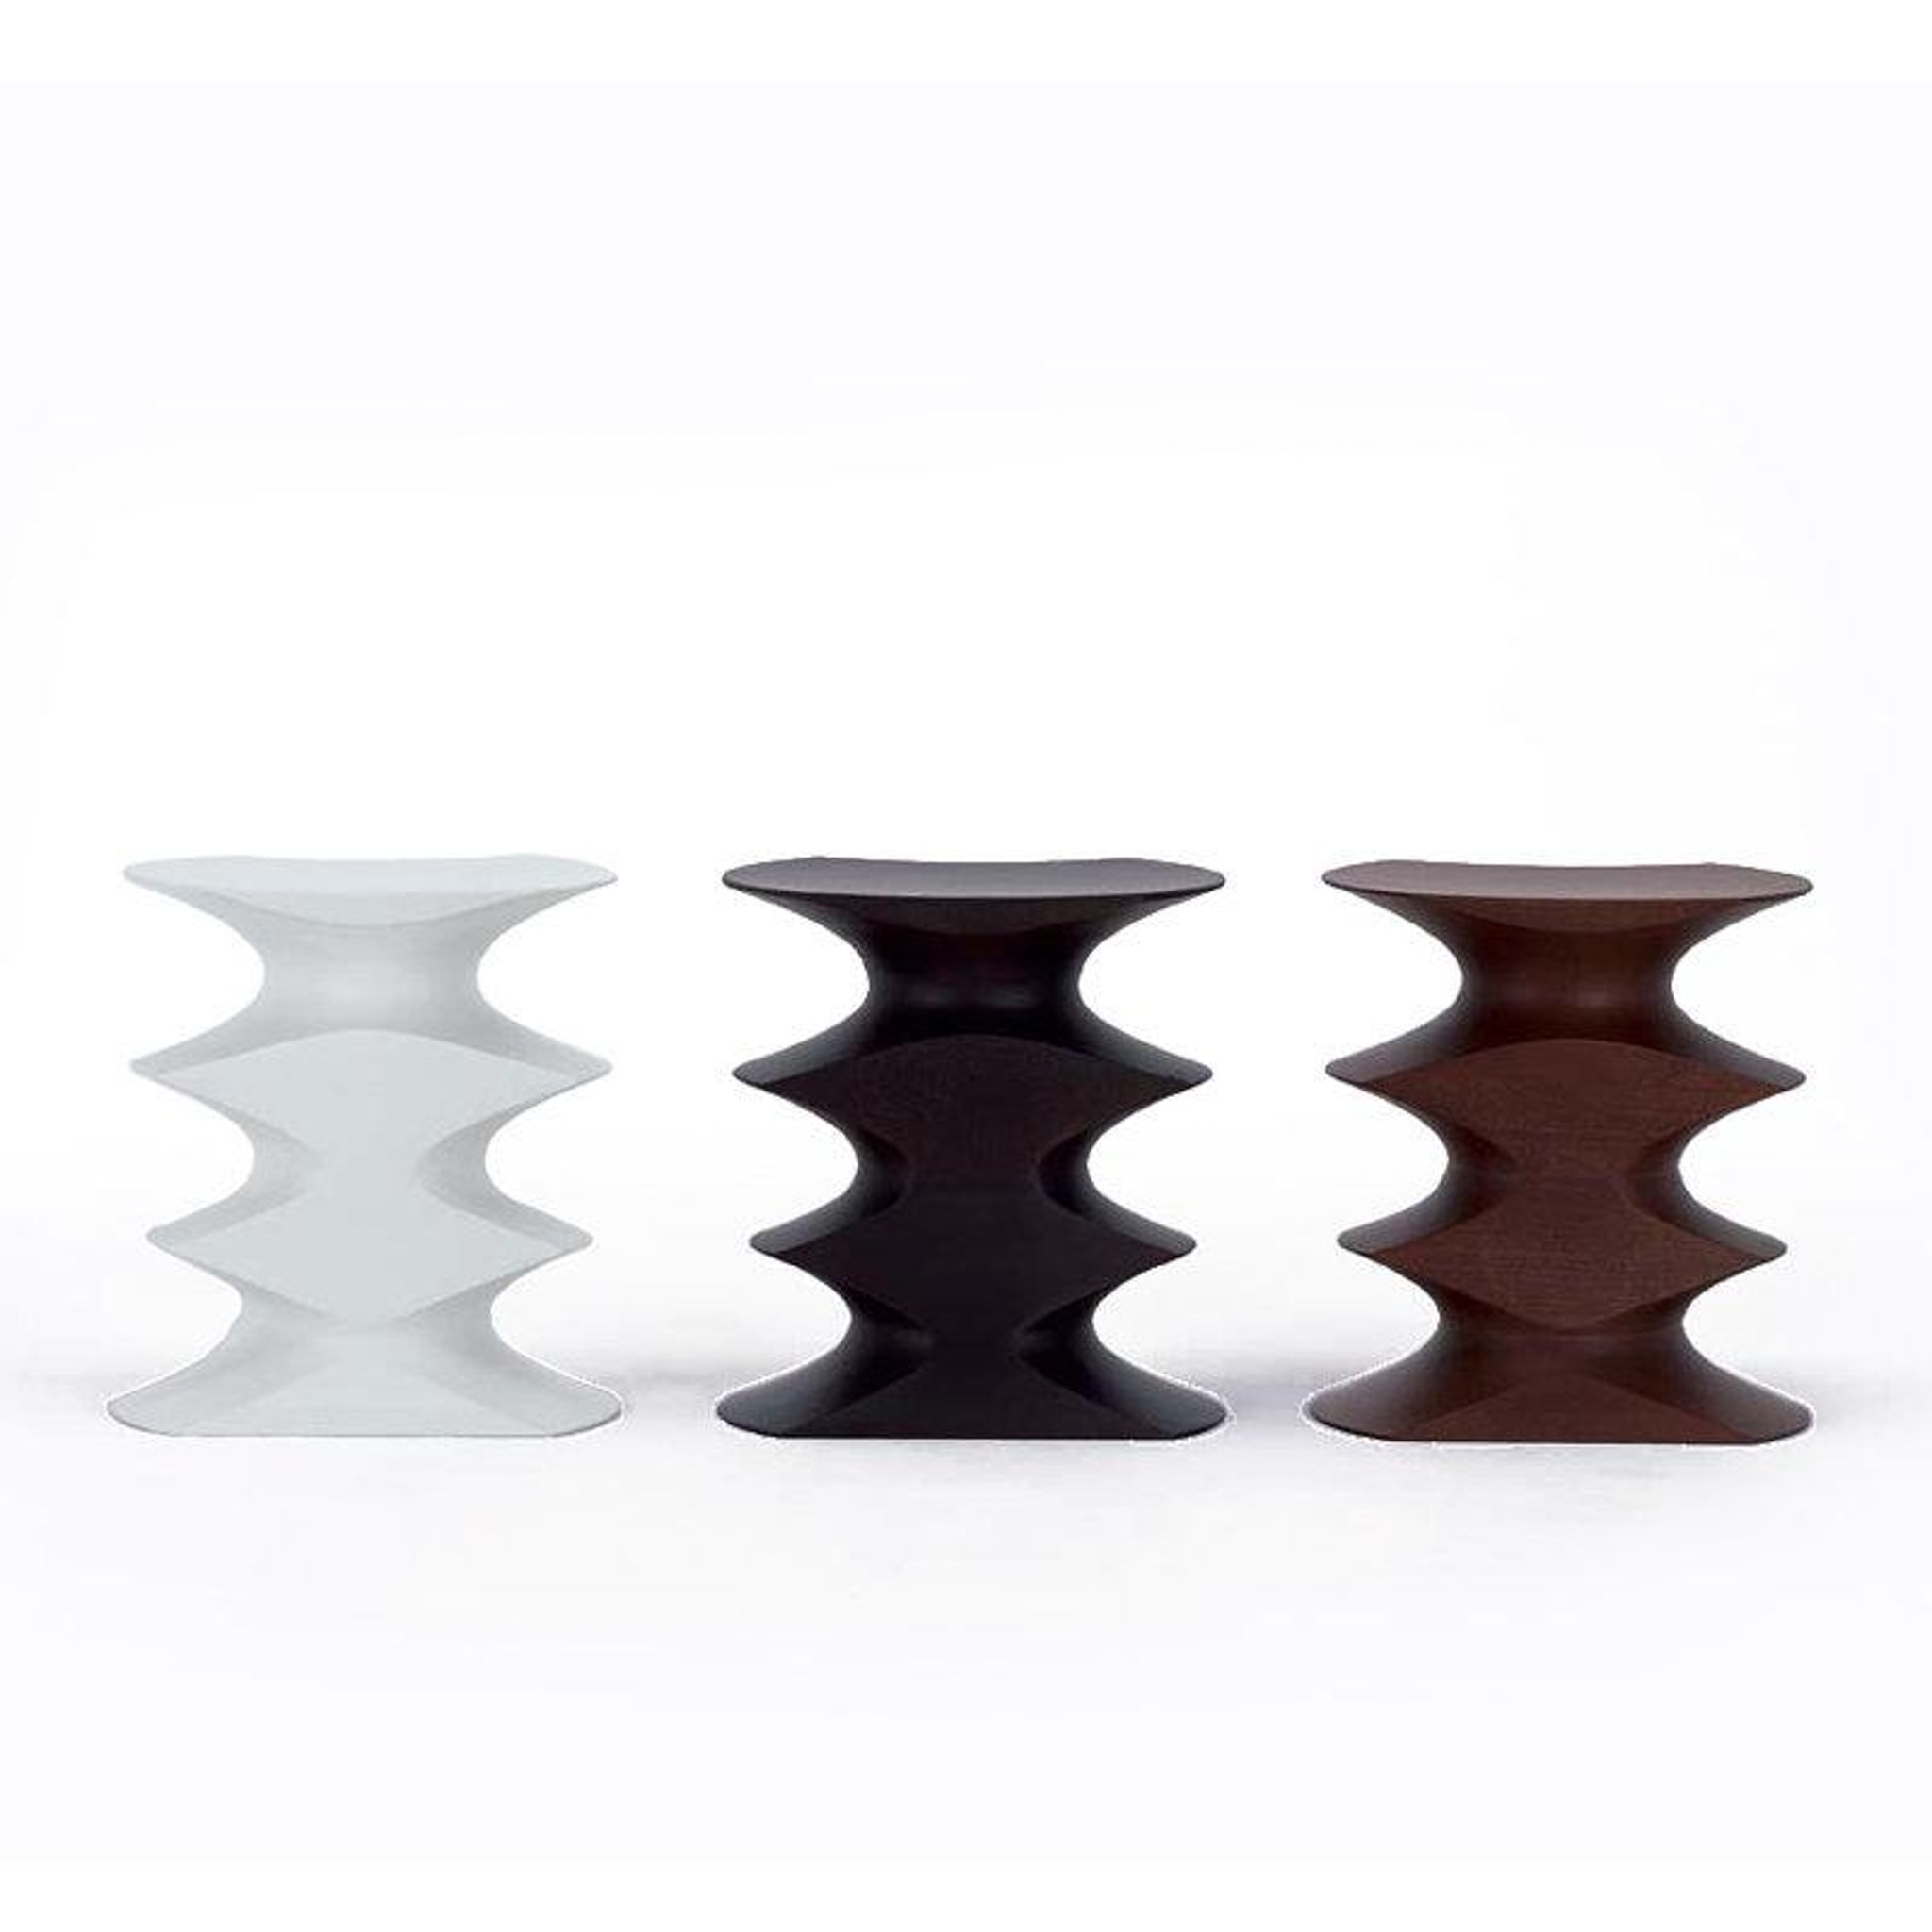 Hocker Stool by Jacques Herzog + Pierre de Meuron by Vitra